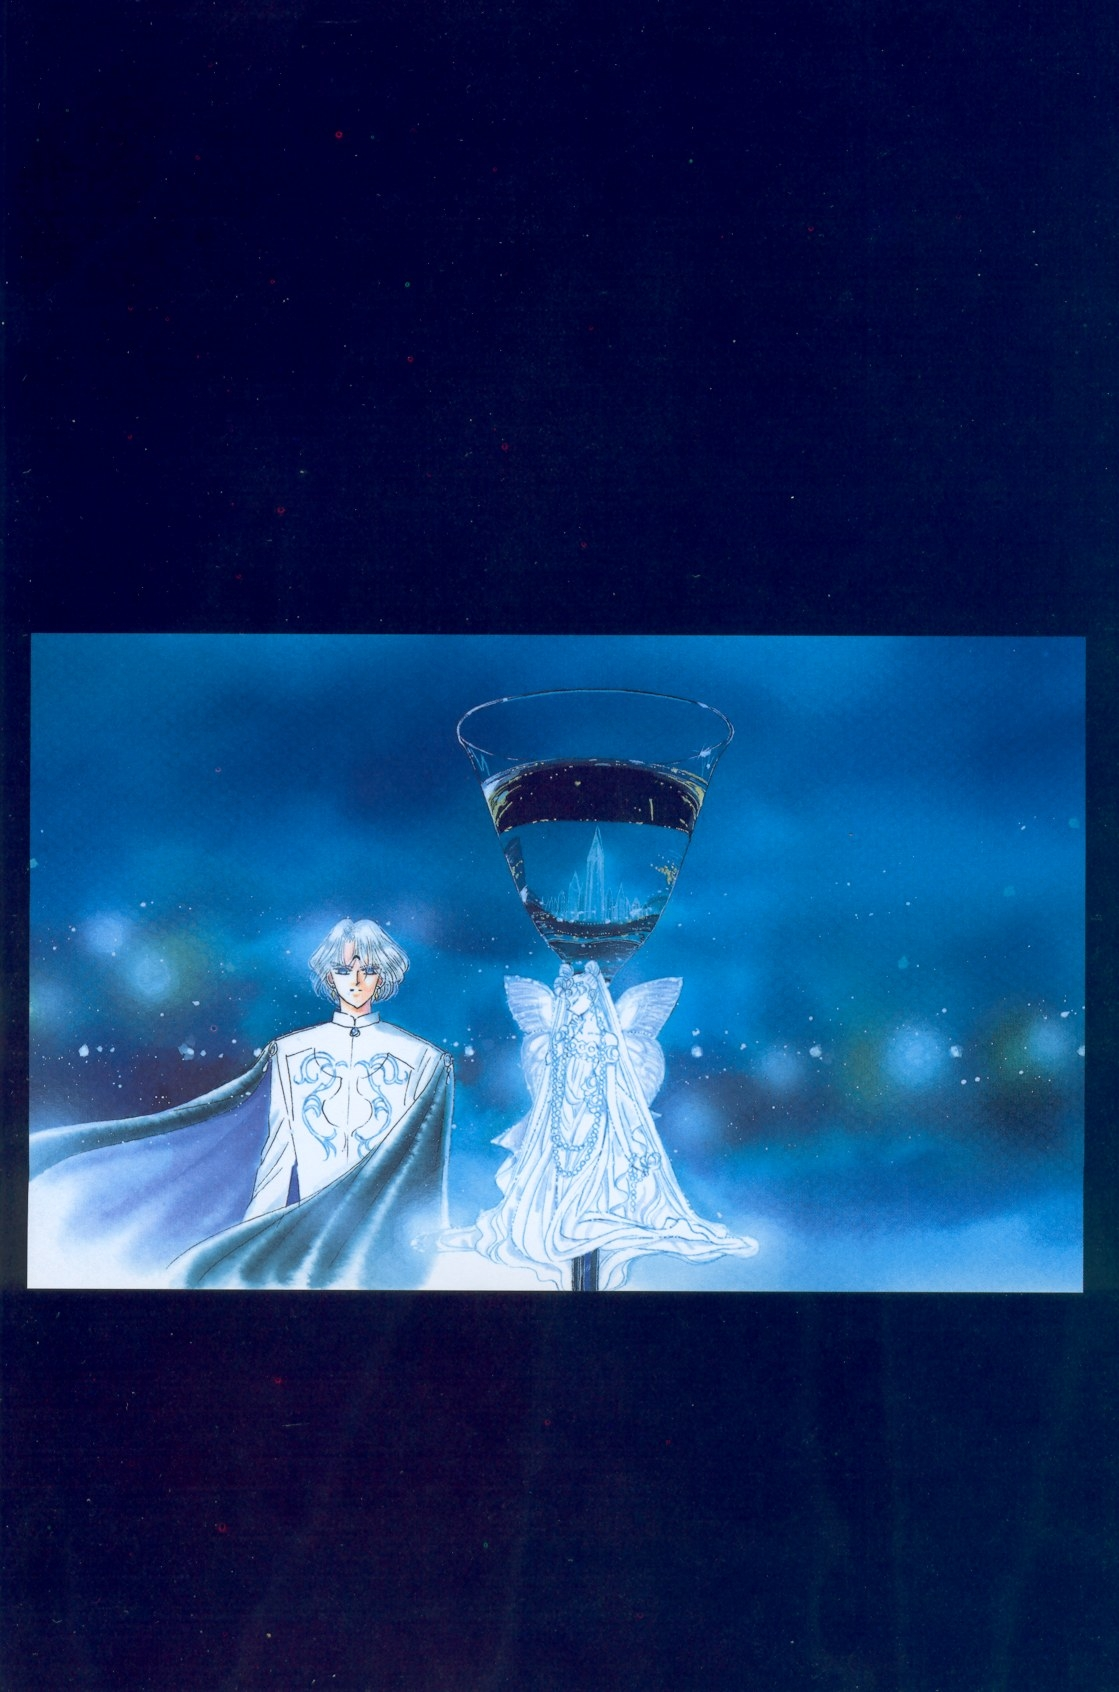 sailor moon 2 favourites - photo #27